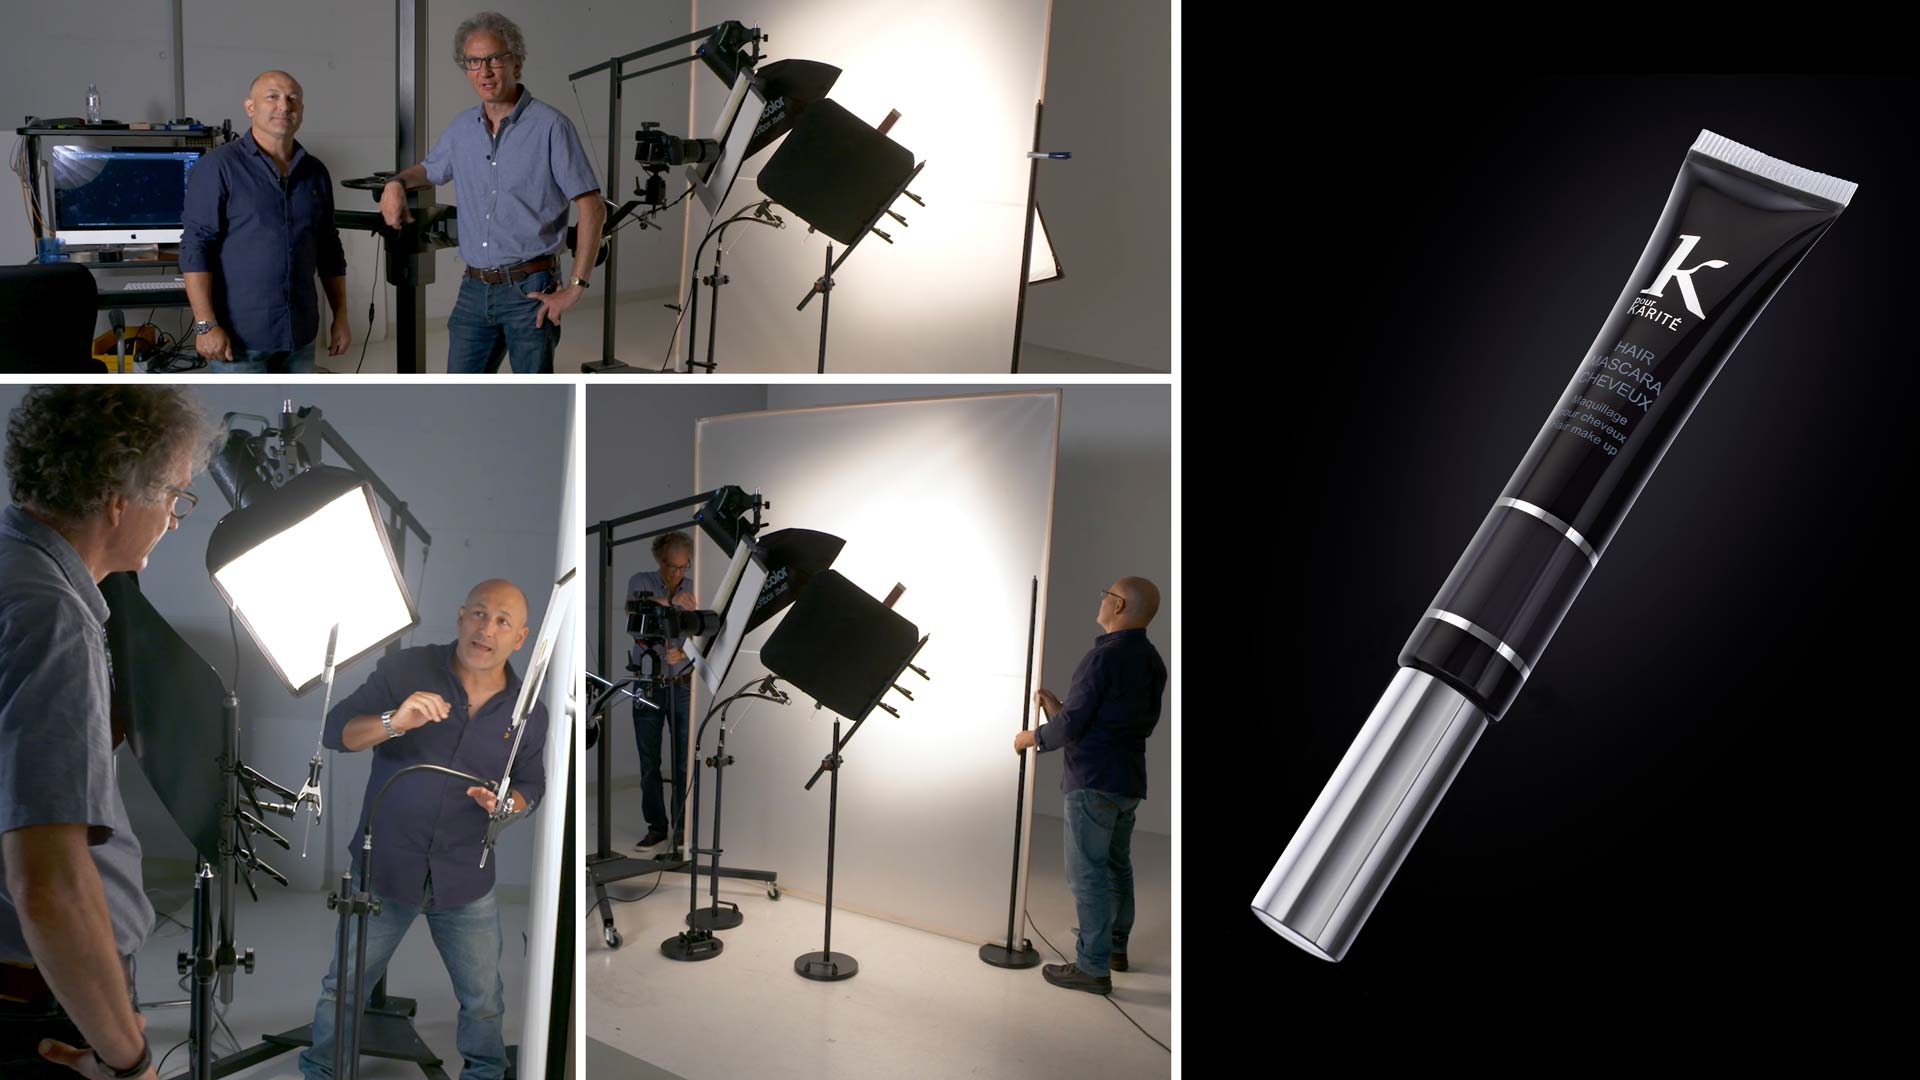 Black on black product photography using two lights